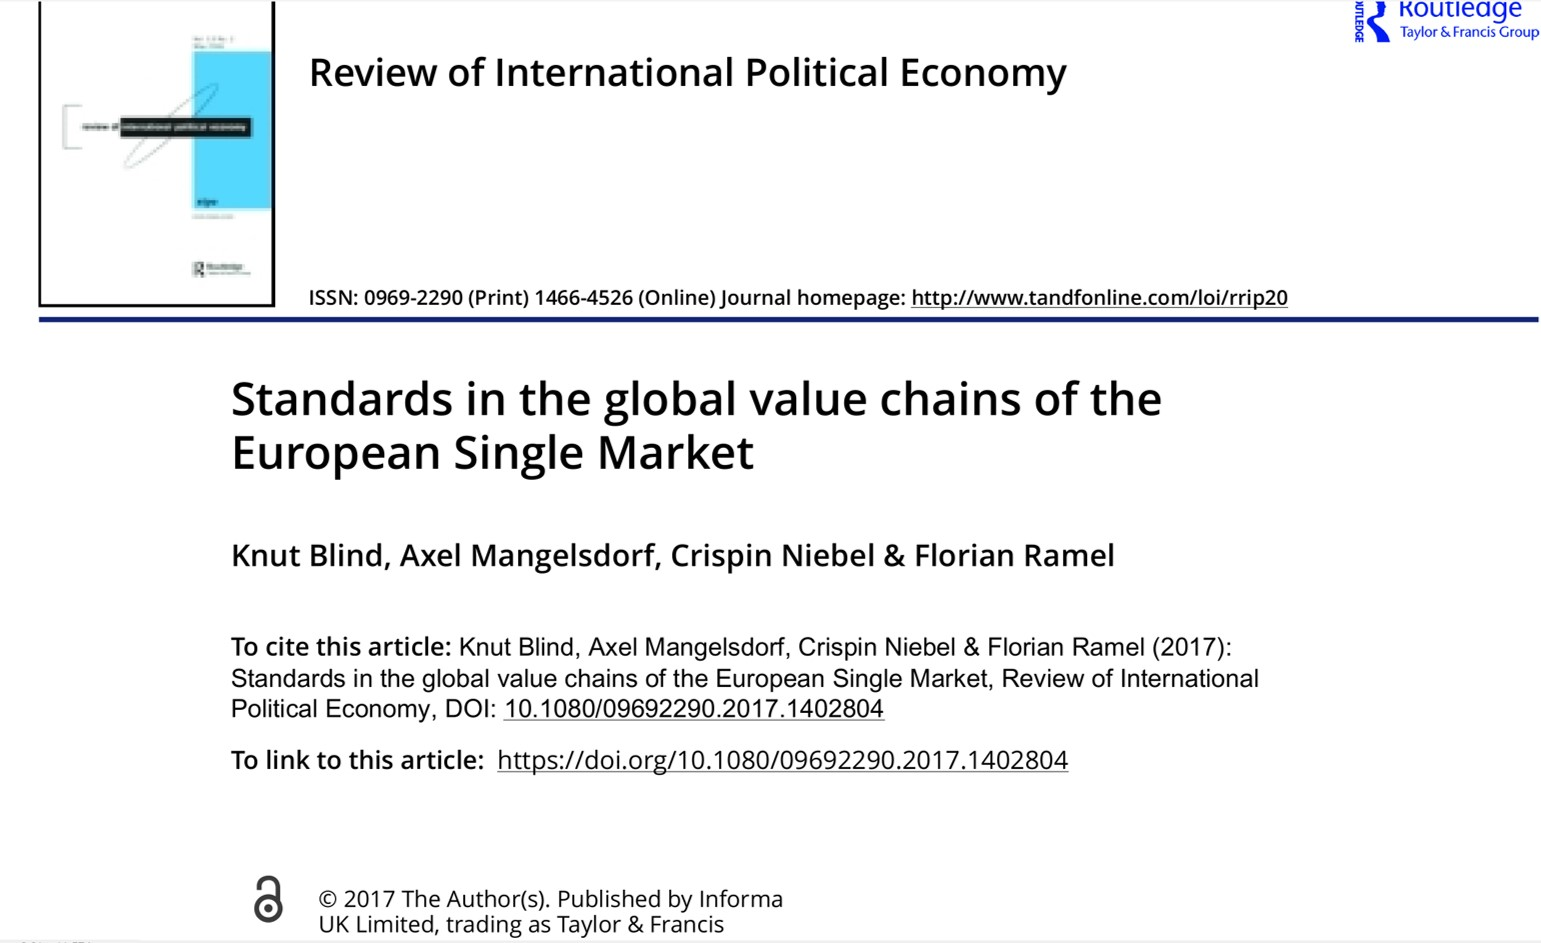 Standards have a positive impact on trade and value chains (November 2017)